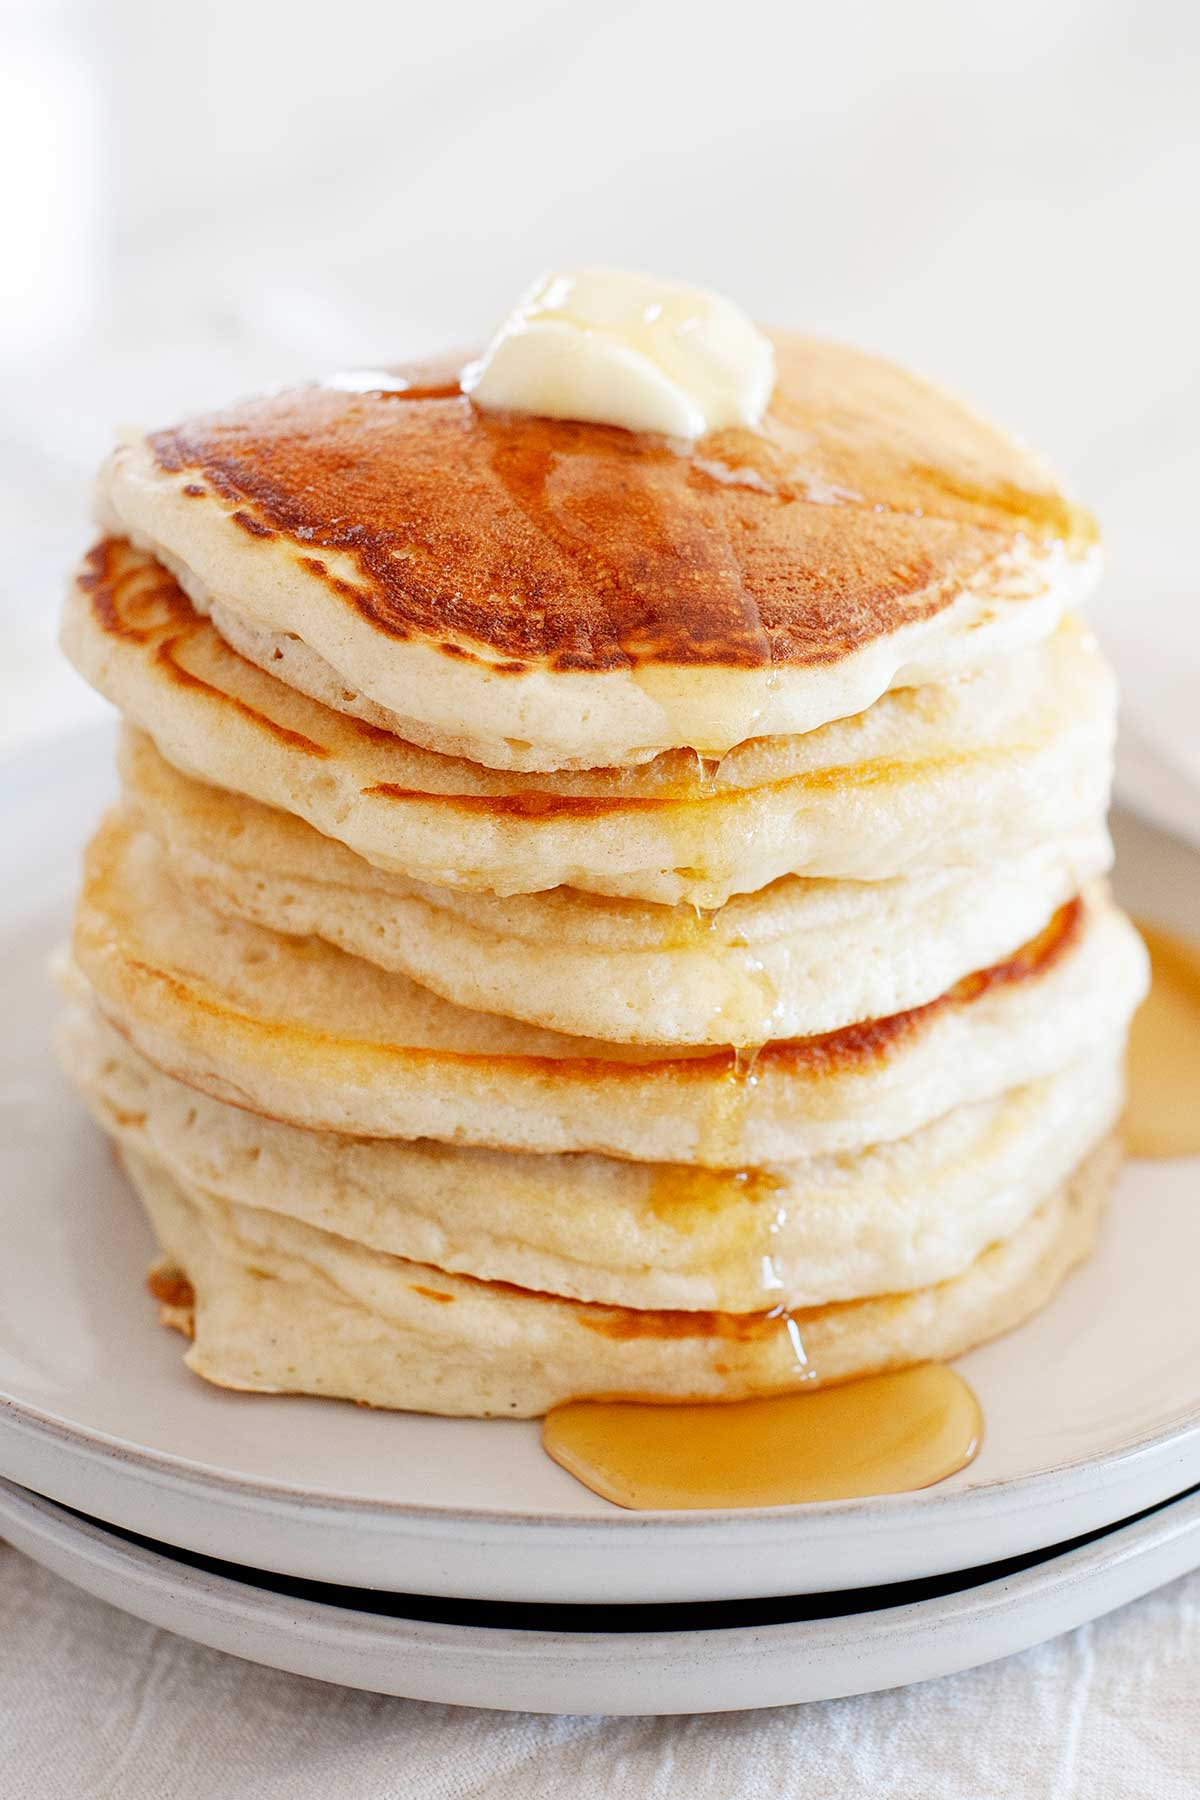 Image: Stack of pancakes topped with butter and syrup.